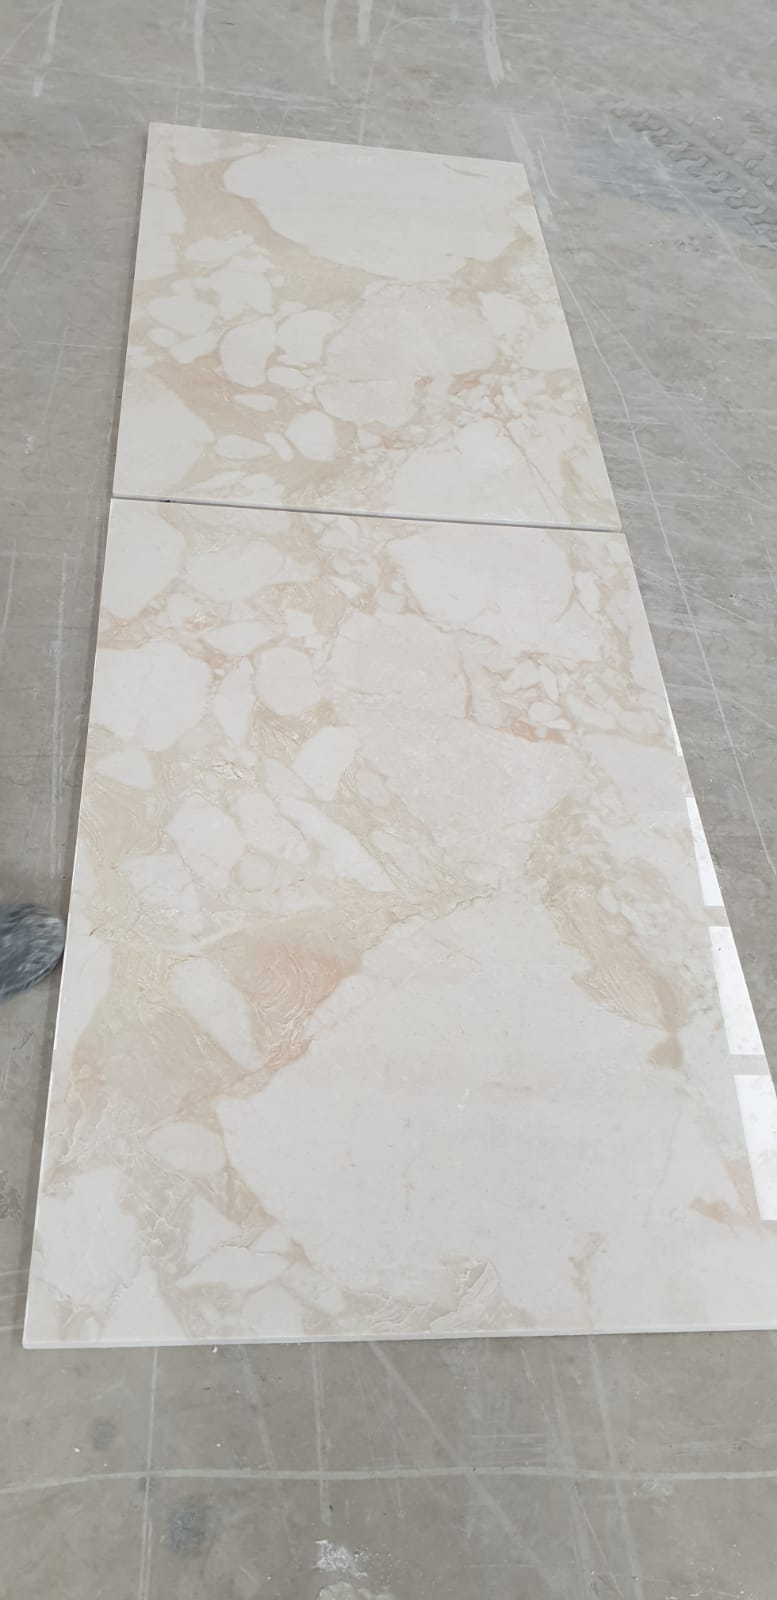 Cemental Slabs & Tiles Bookmatch Marble Tiles